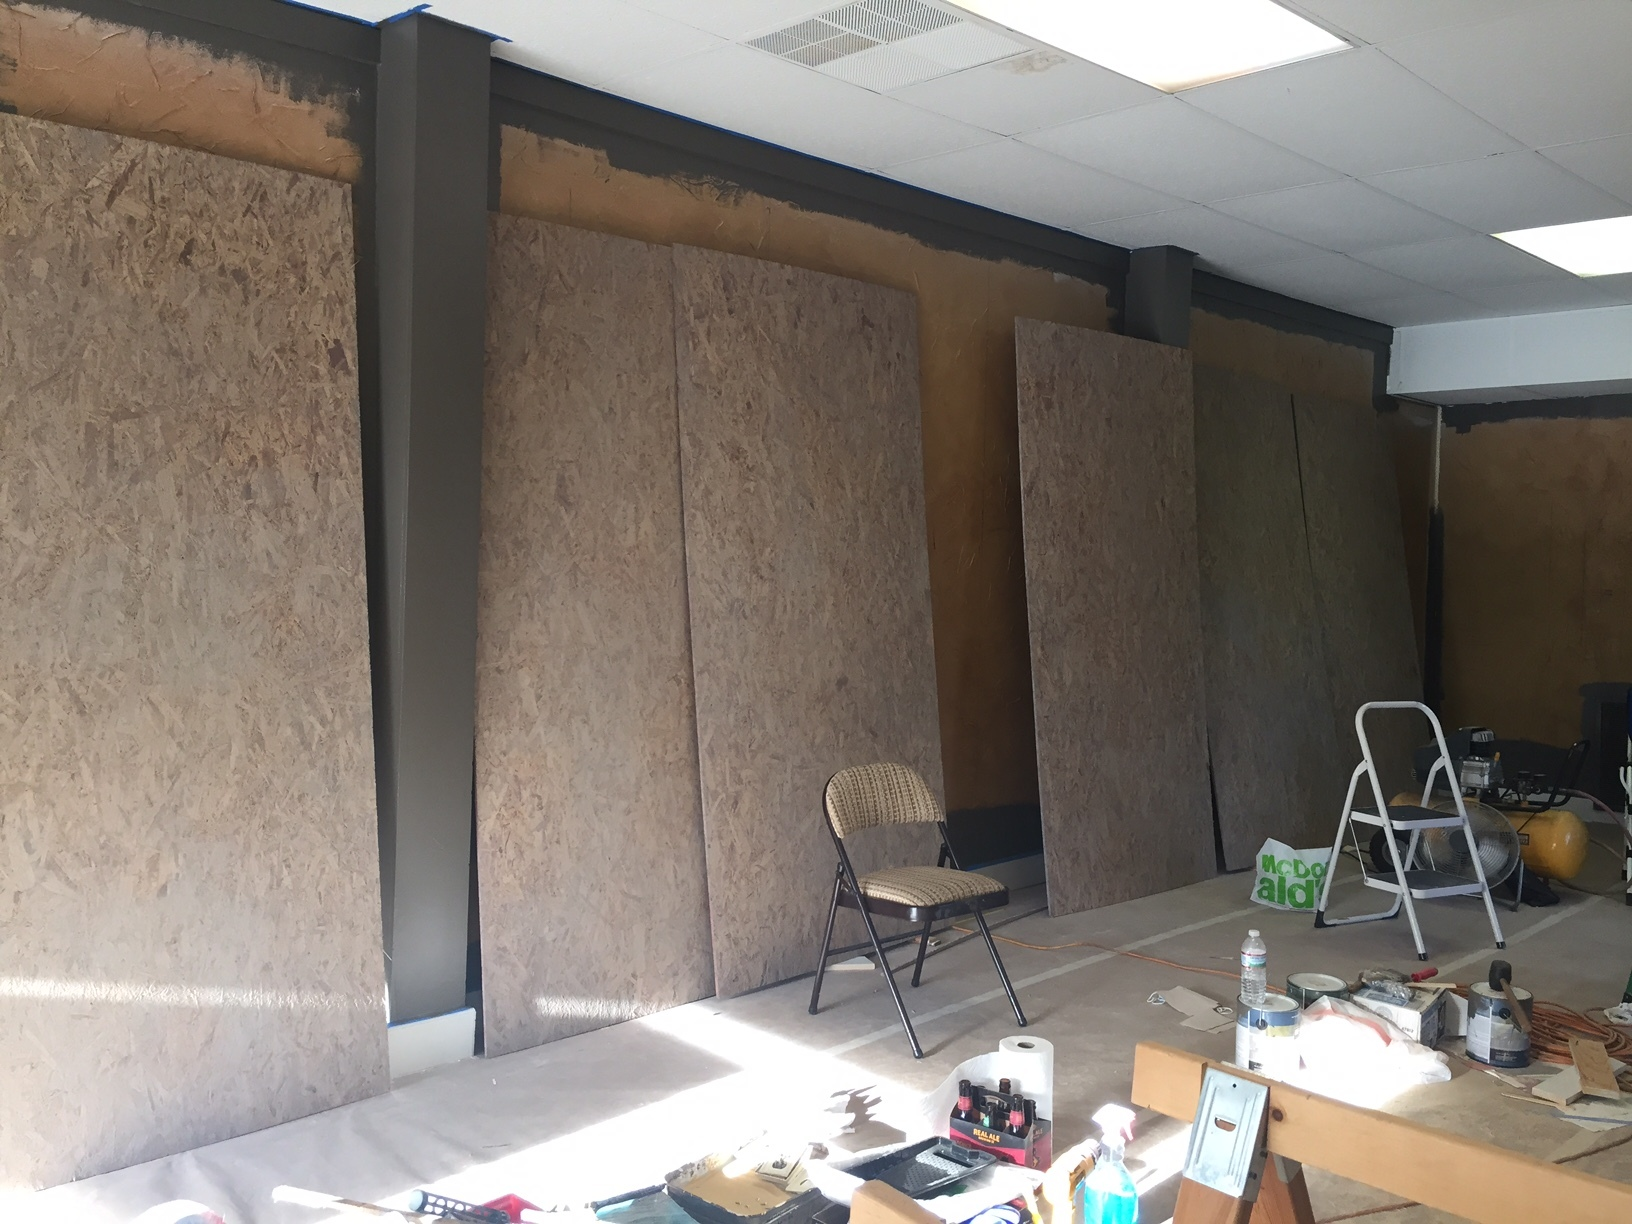 Feb 8th and walls beginning to go up...